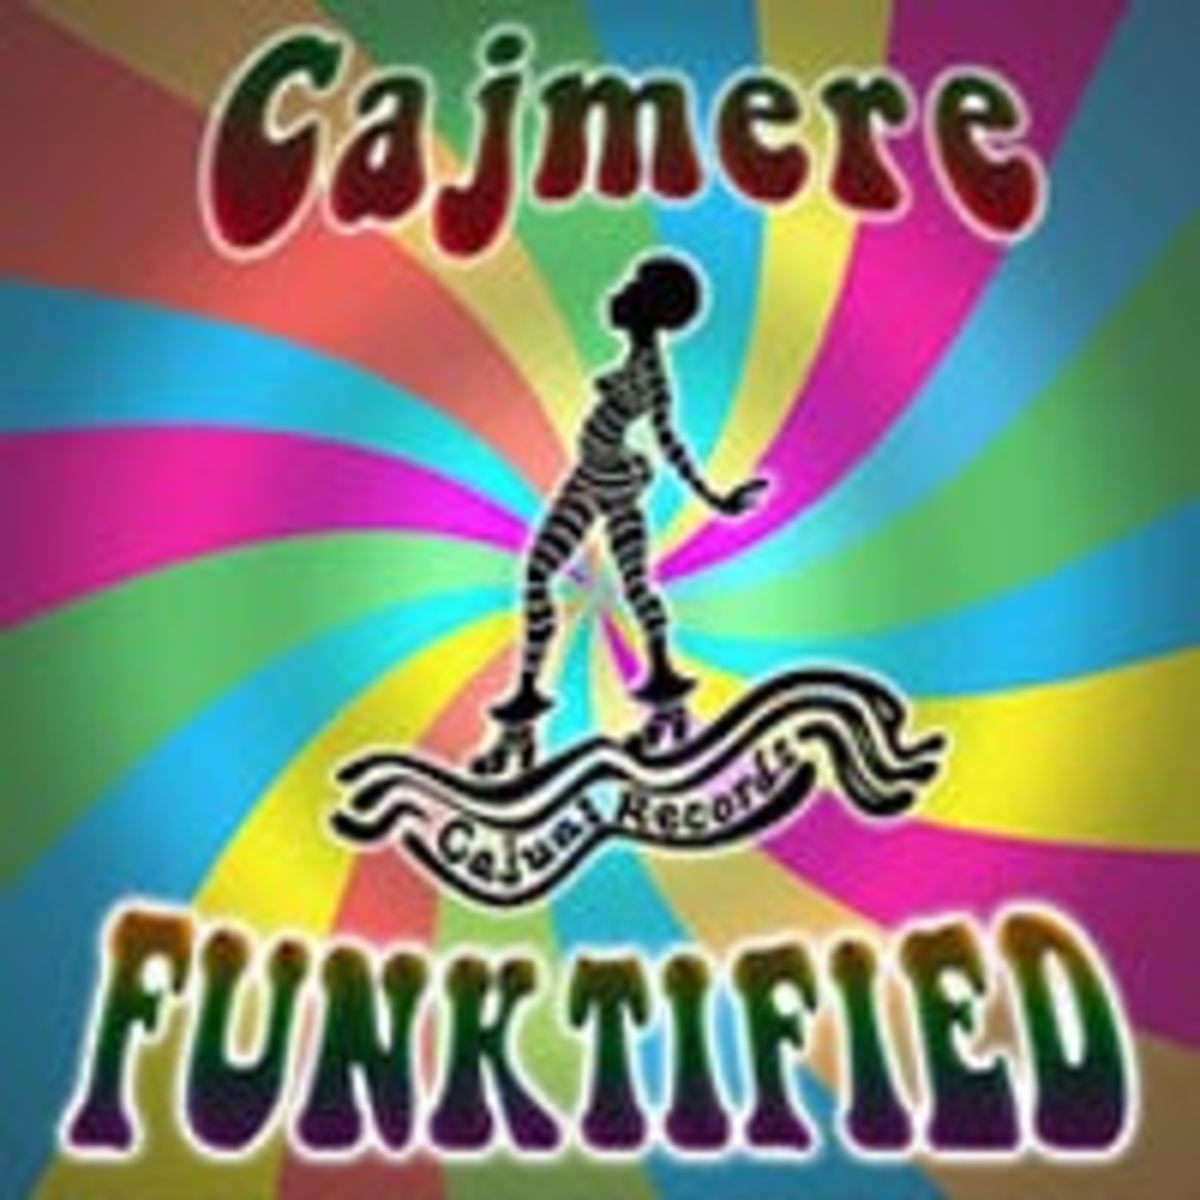 Cajmere.Funktified